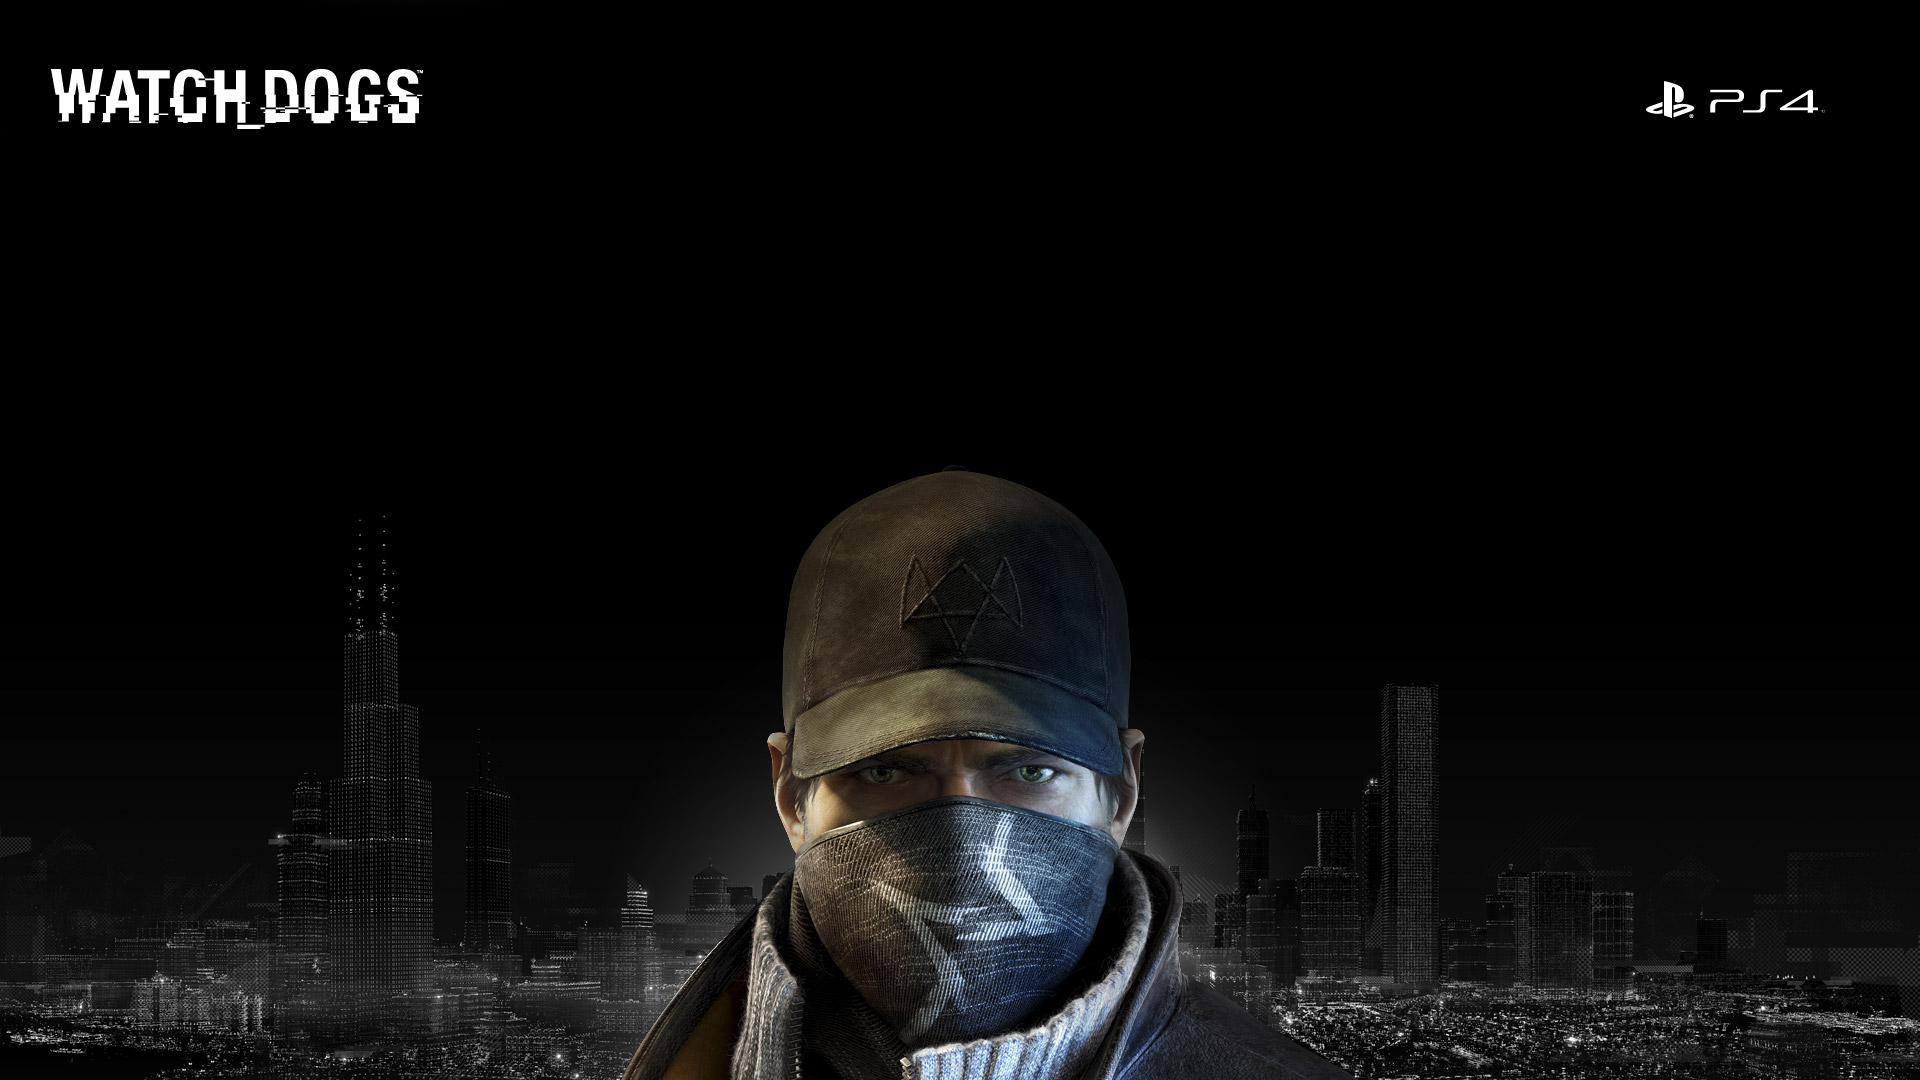 Thread: Watch Dogs Question. | Forums